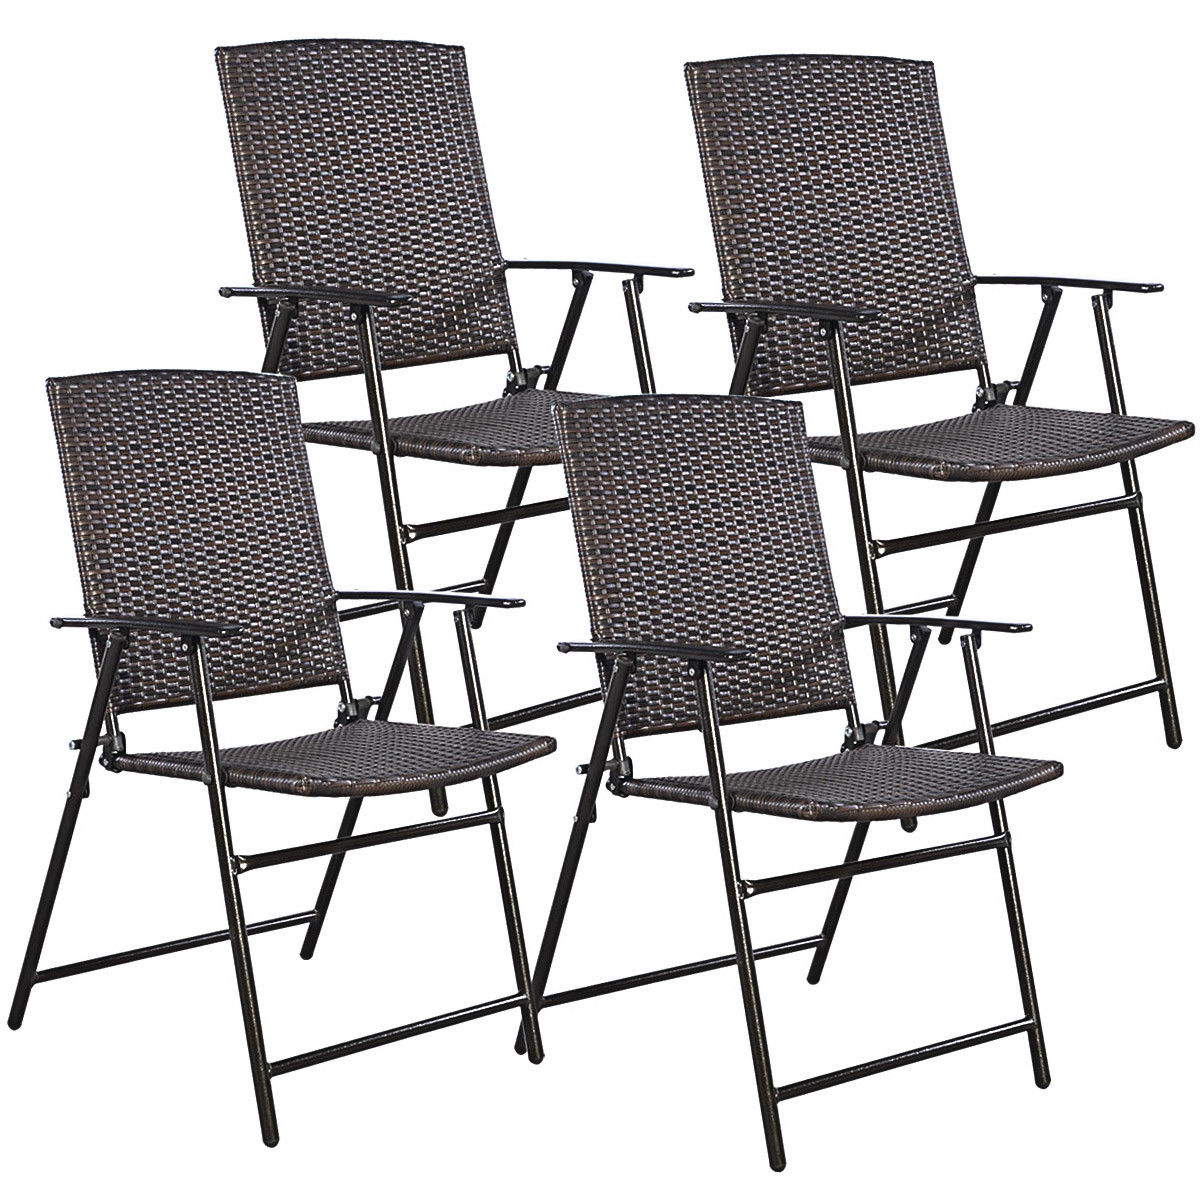 Gymax Folding Rattan Chair Brown 4 PCS Outdoor Indoor Furniture